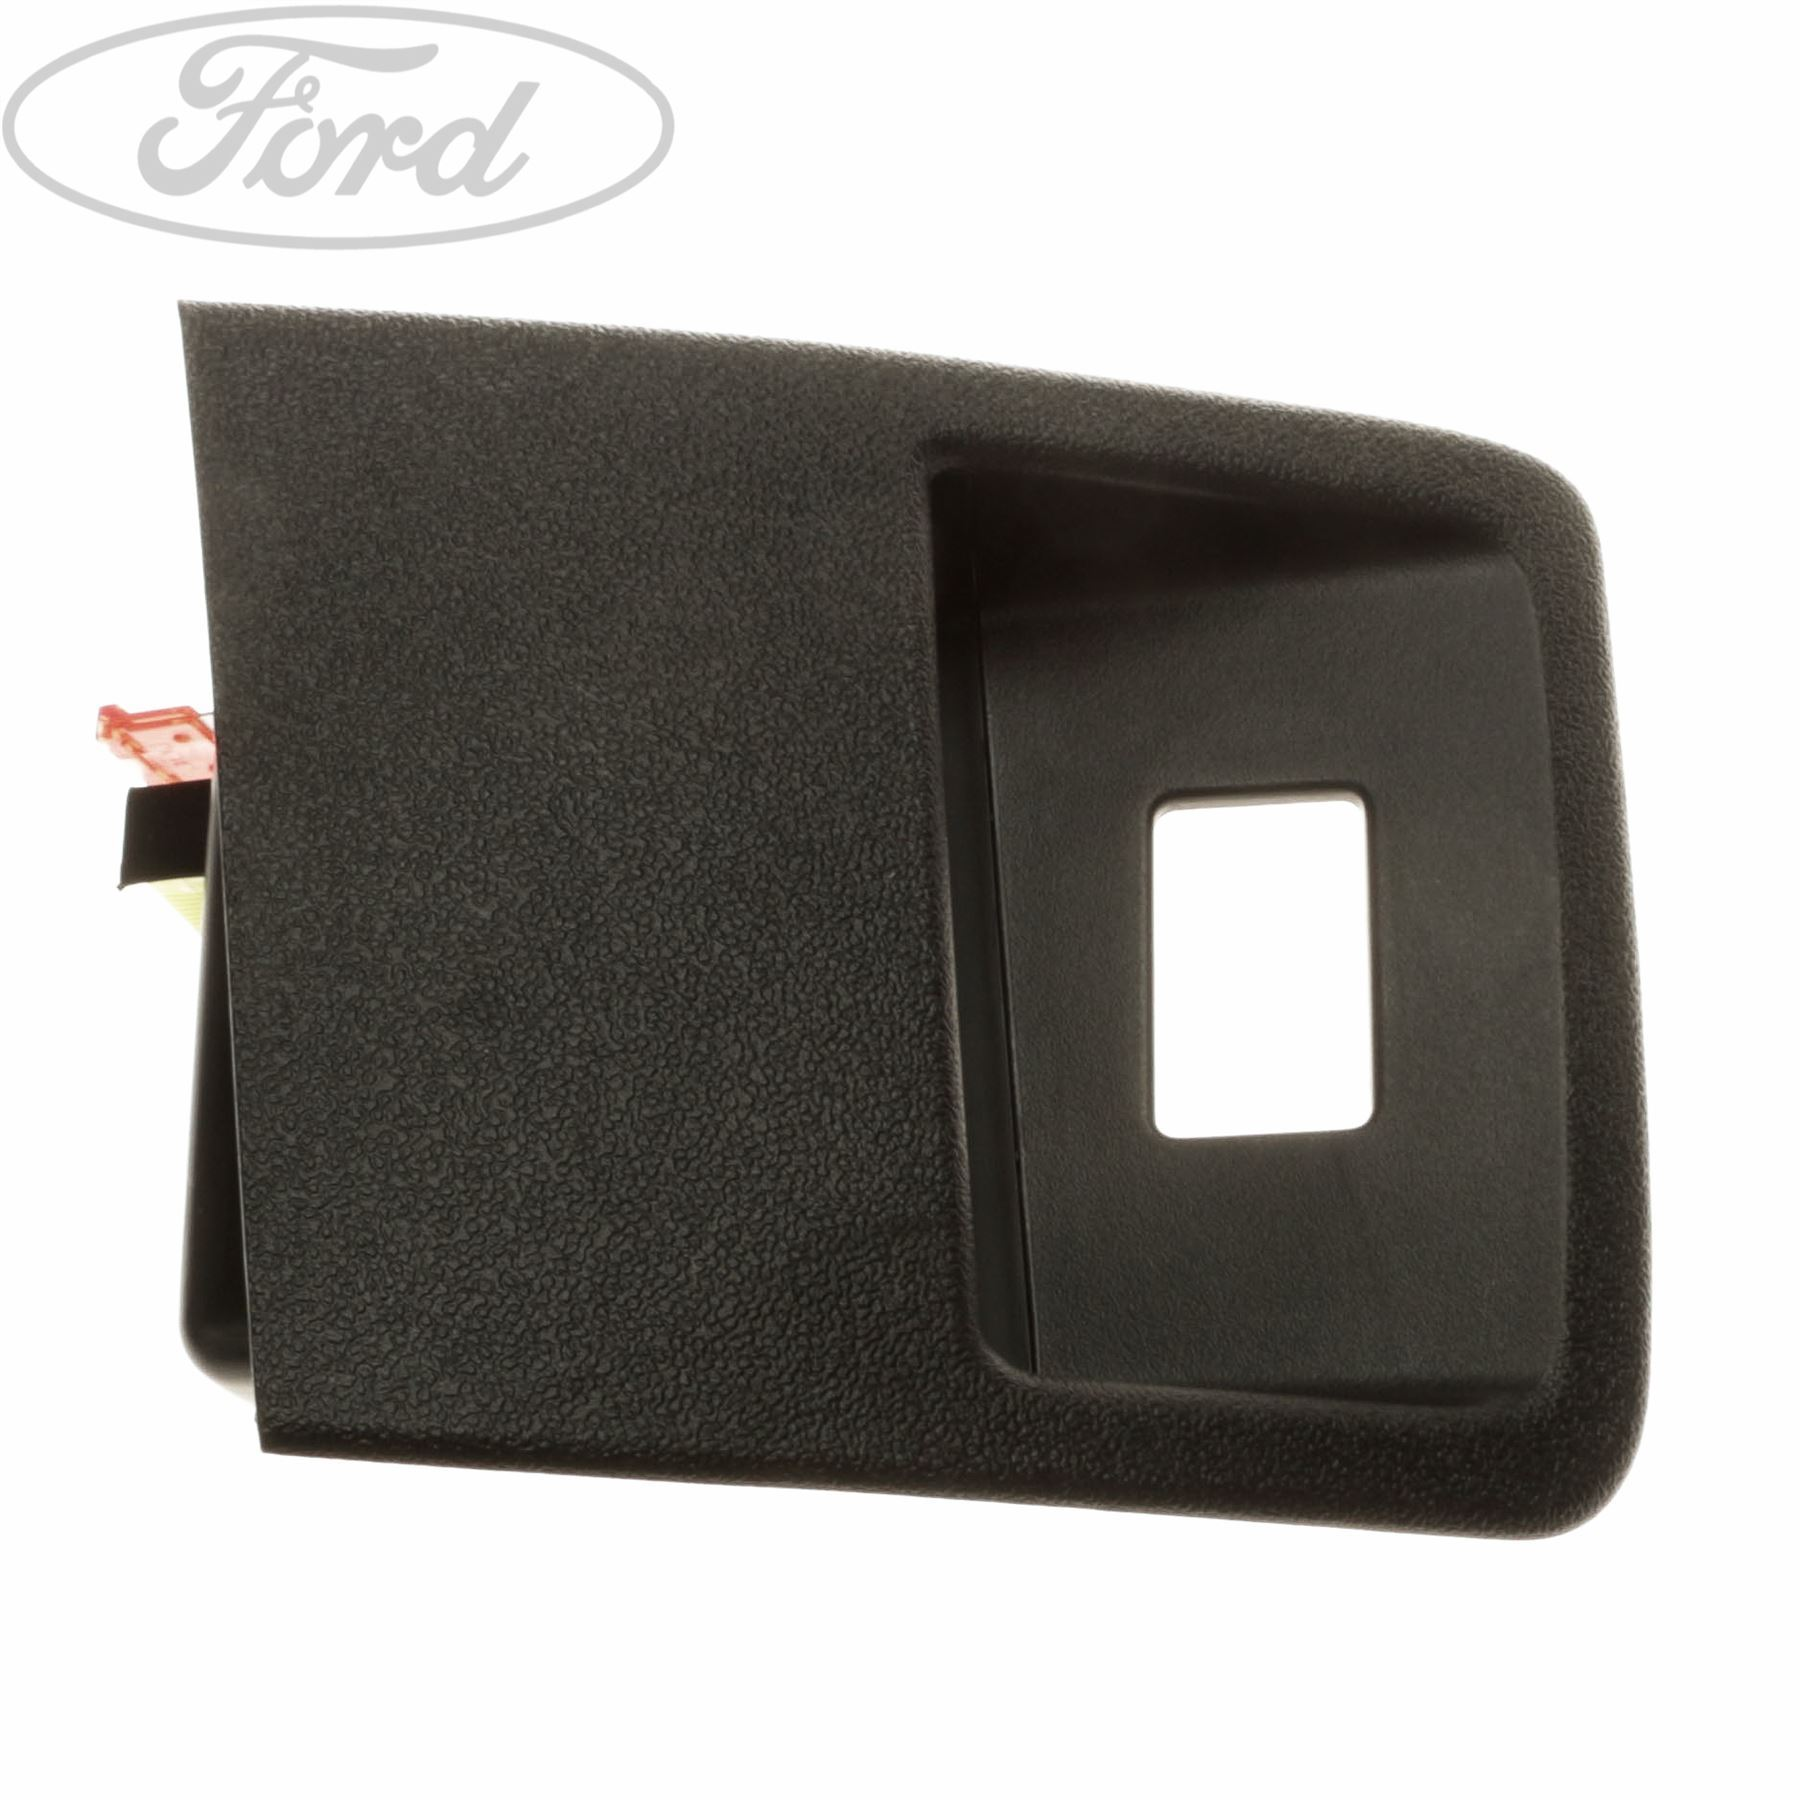 hight resolution of genuine ford ka mk1 fuse box cover 1376792 4 4 of 4 see more